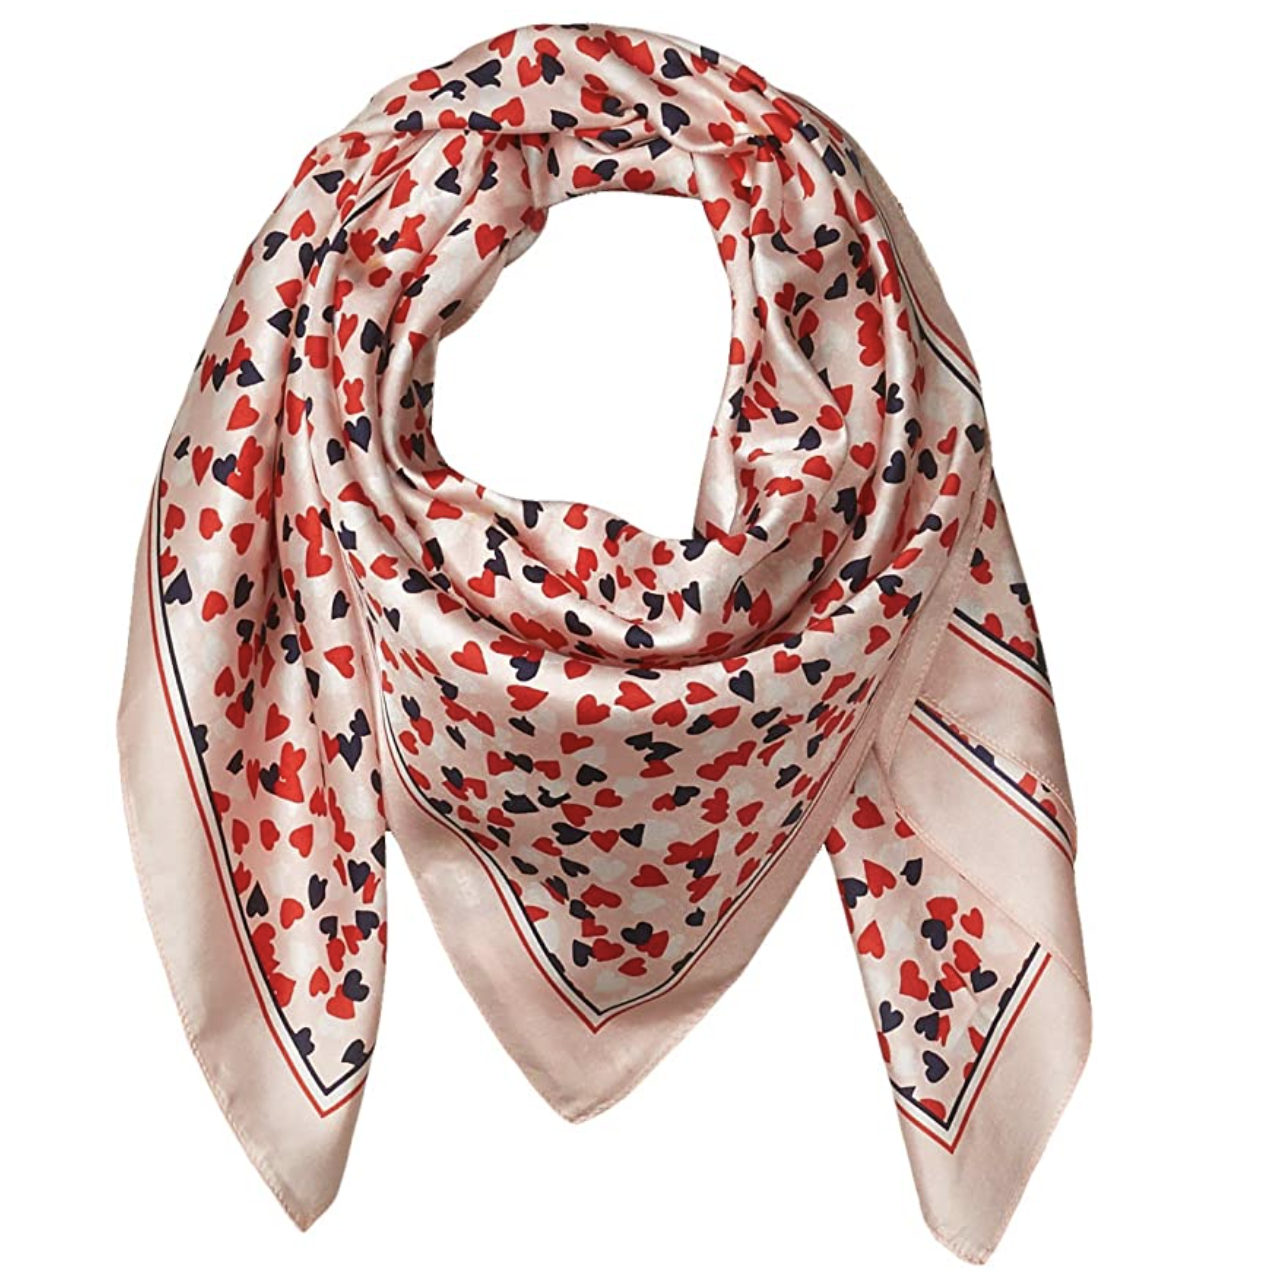 maid-of-honor-gifts-scarf